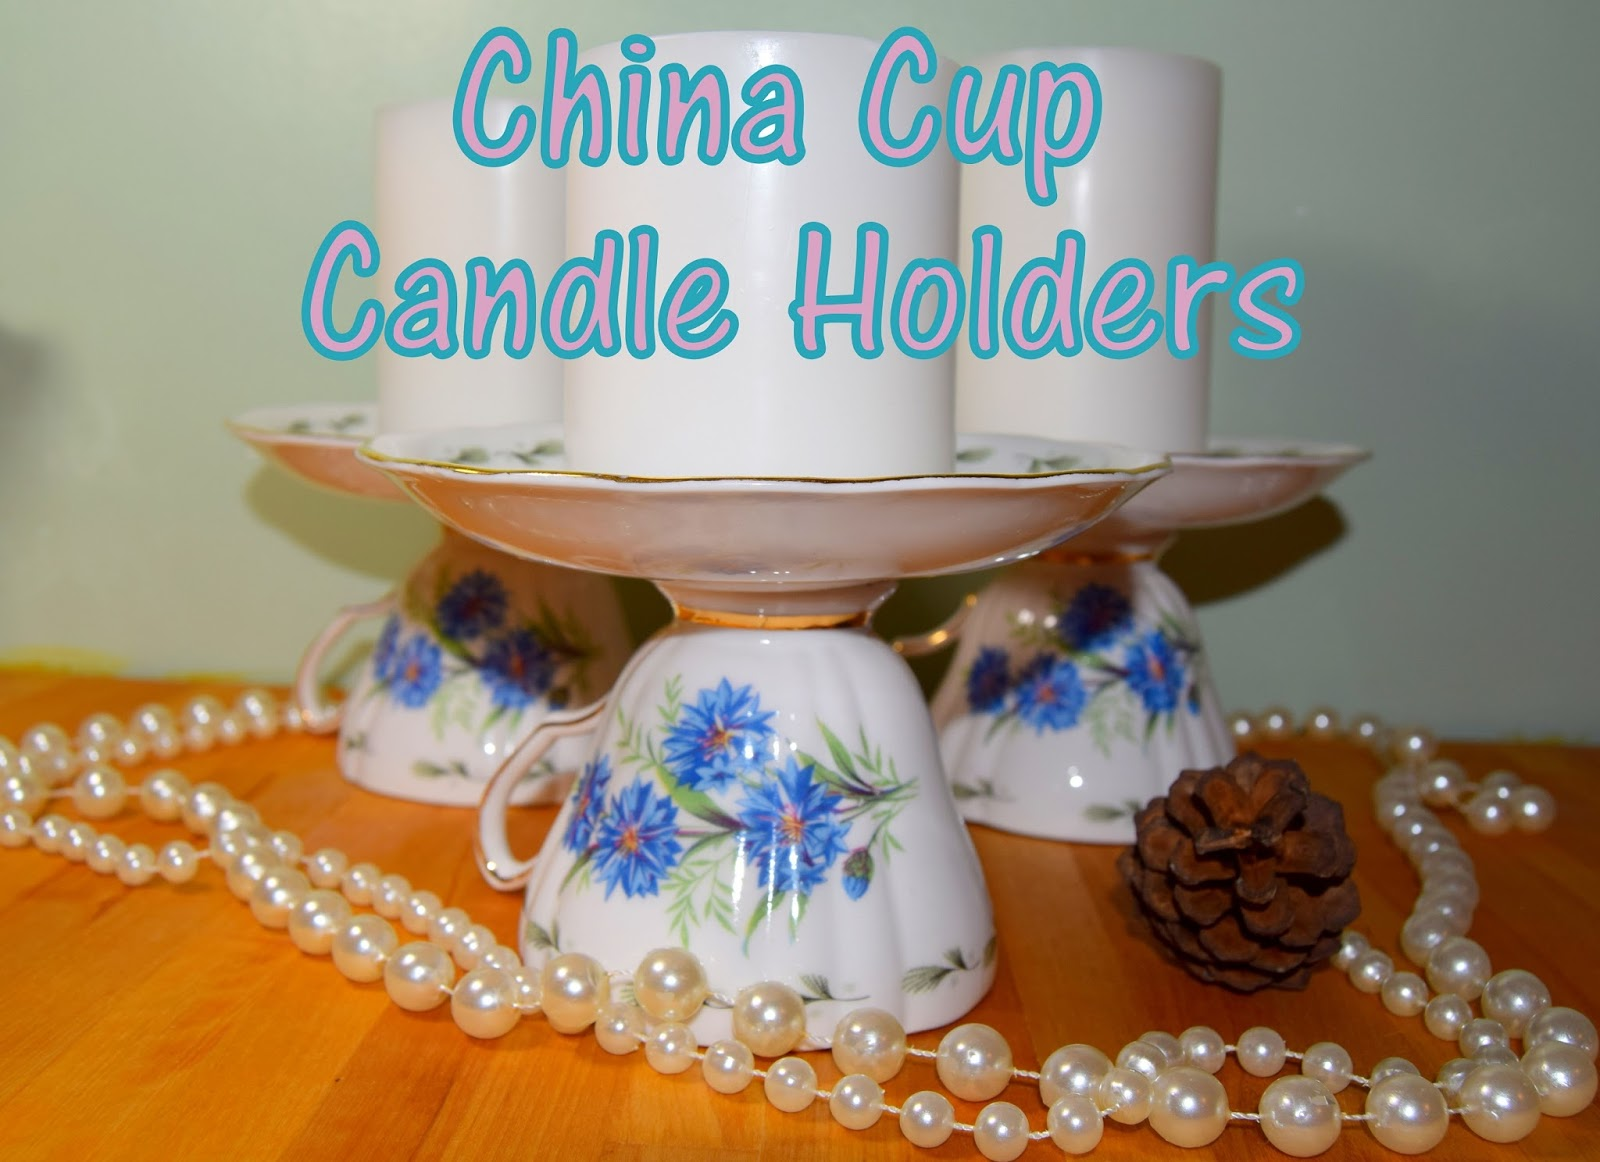 Up cycled China Cup Candle Holders...